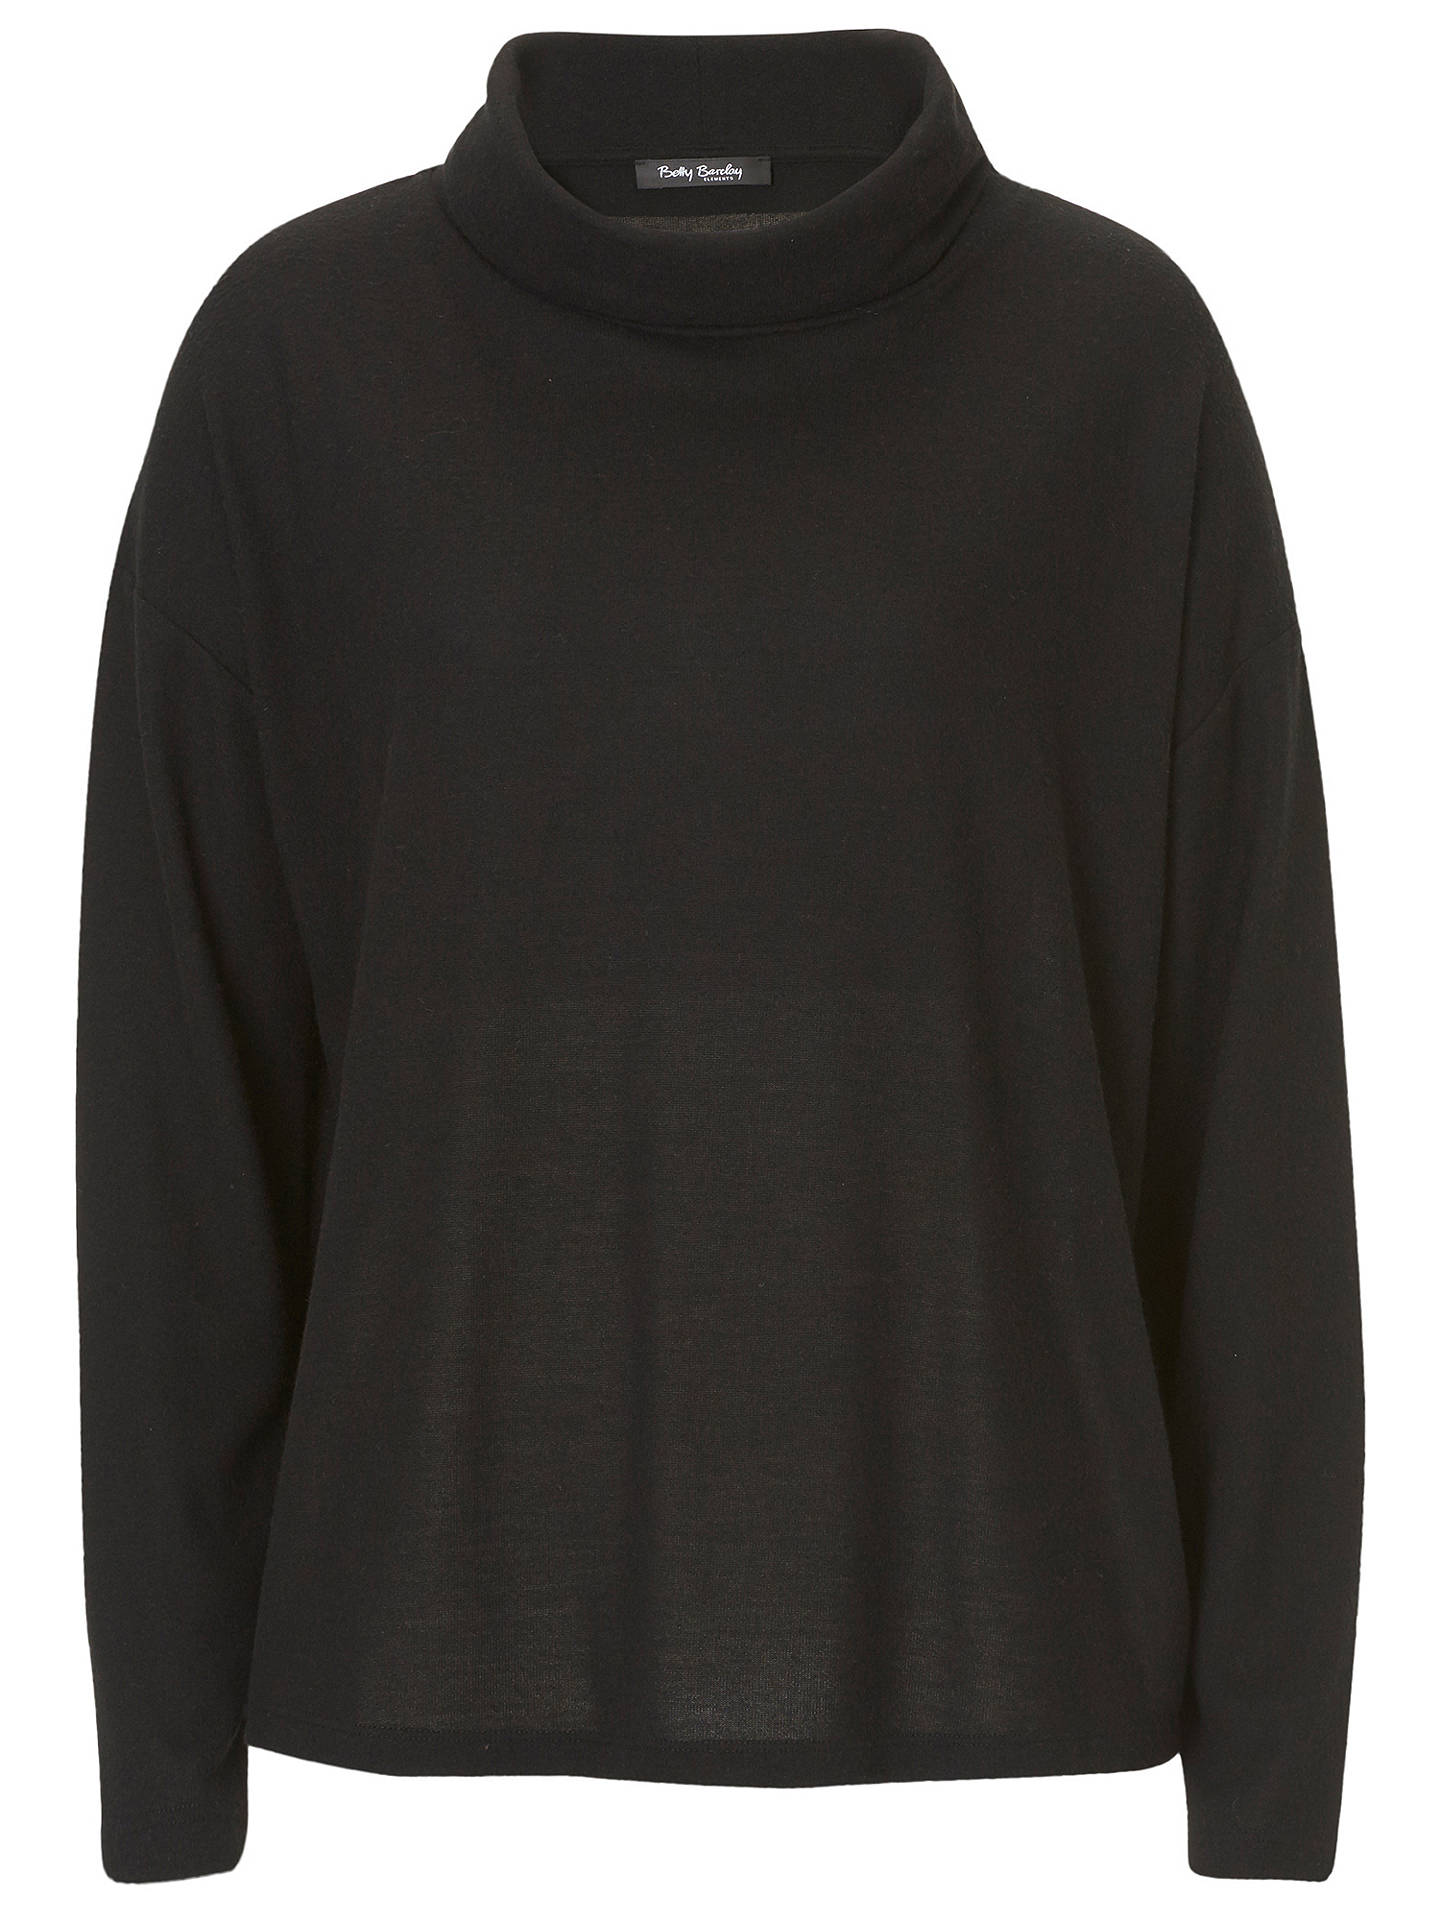 BuyBetty Barclay Jersey Jumper, Black, 6 Online at johnlewis.com